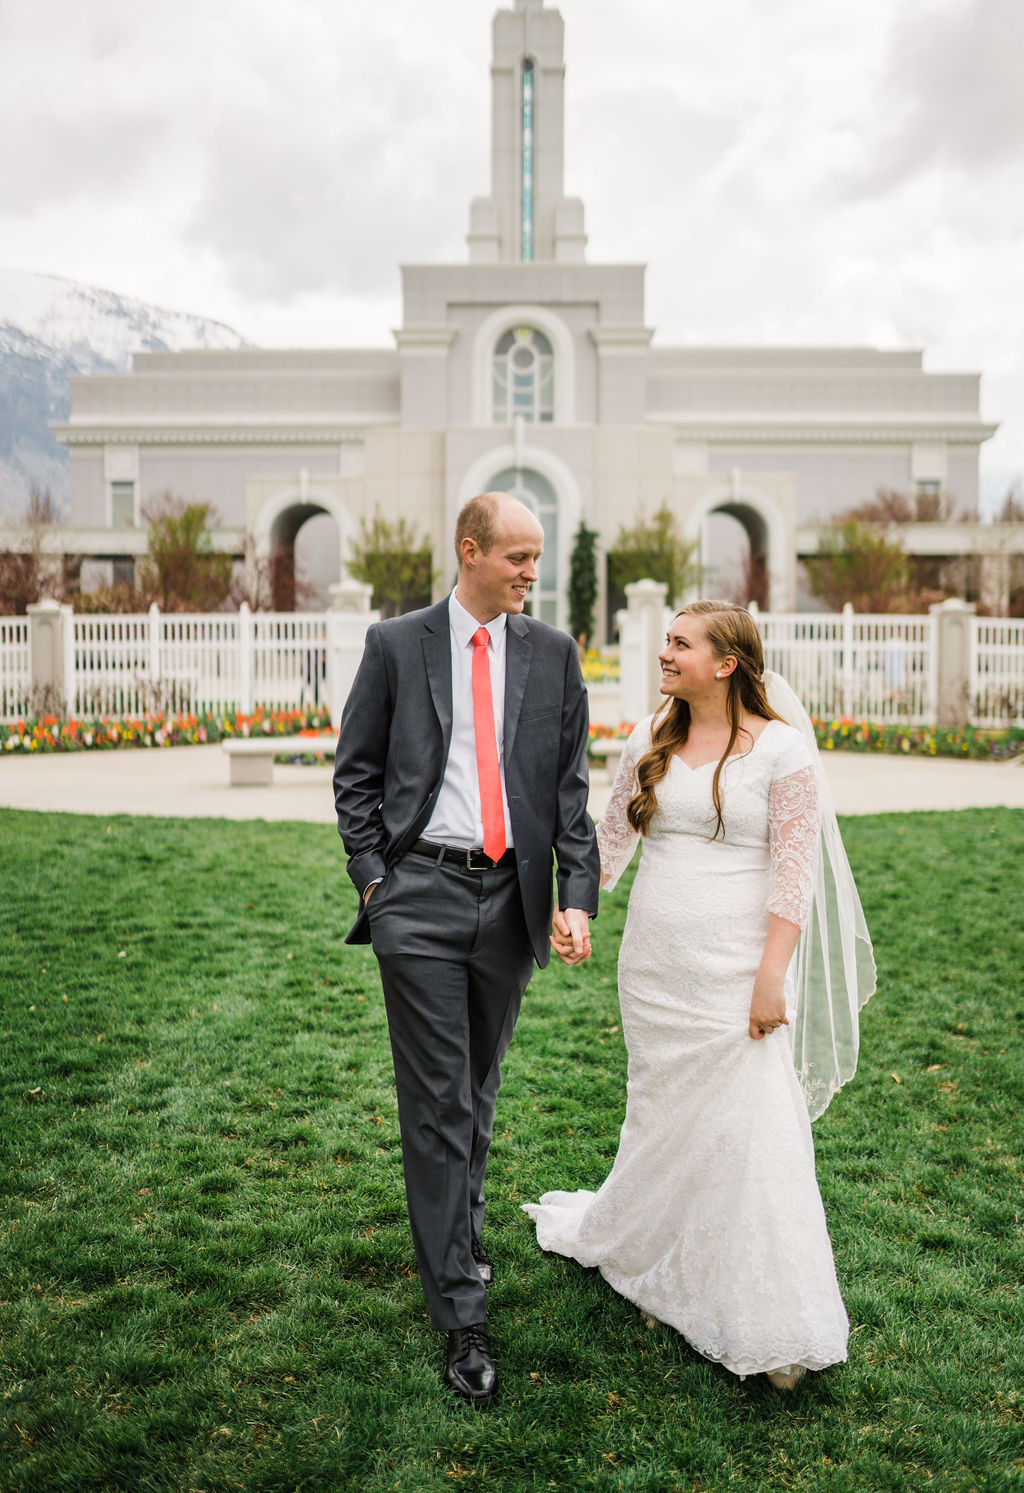 Leah and Spencer Mount Timpanogos Wedding Christine Madeux Photography Rexburg Idaho Photographer